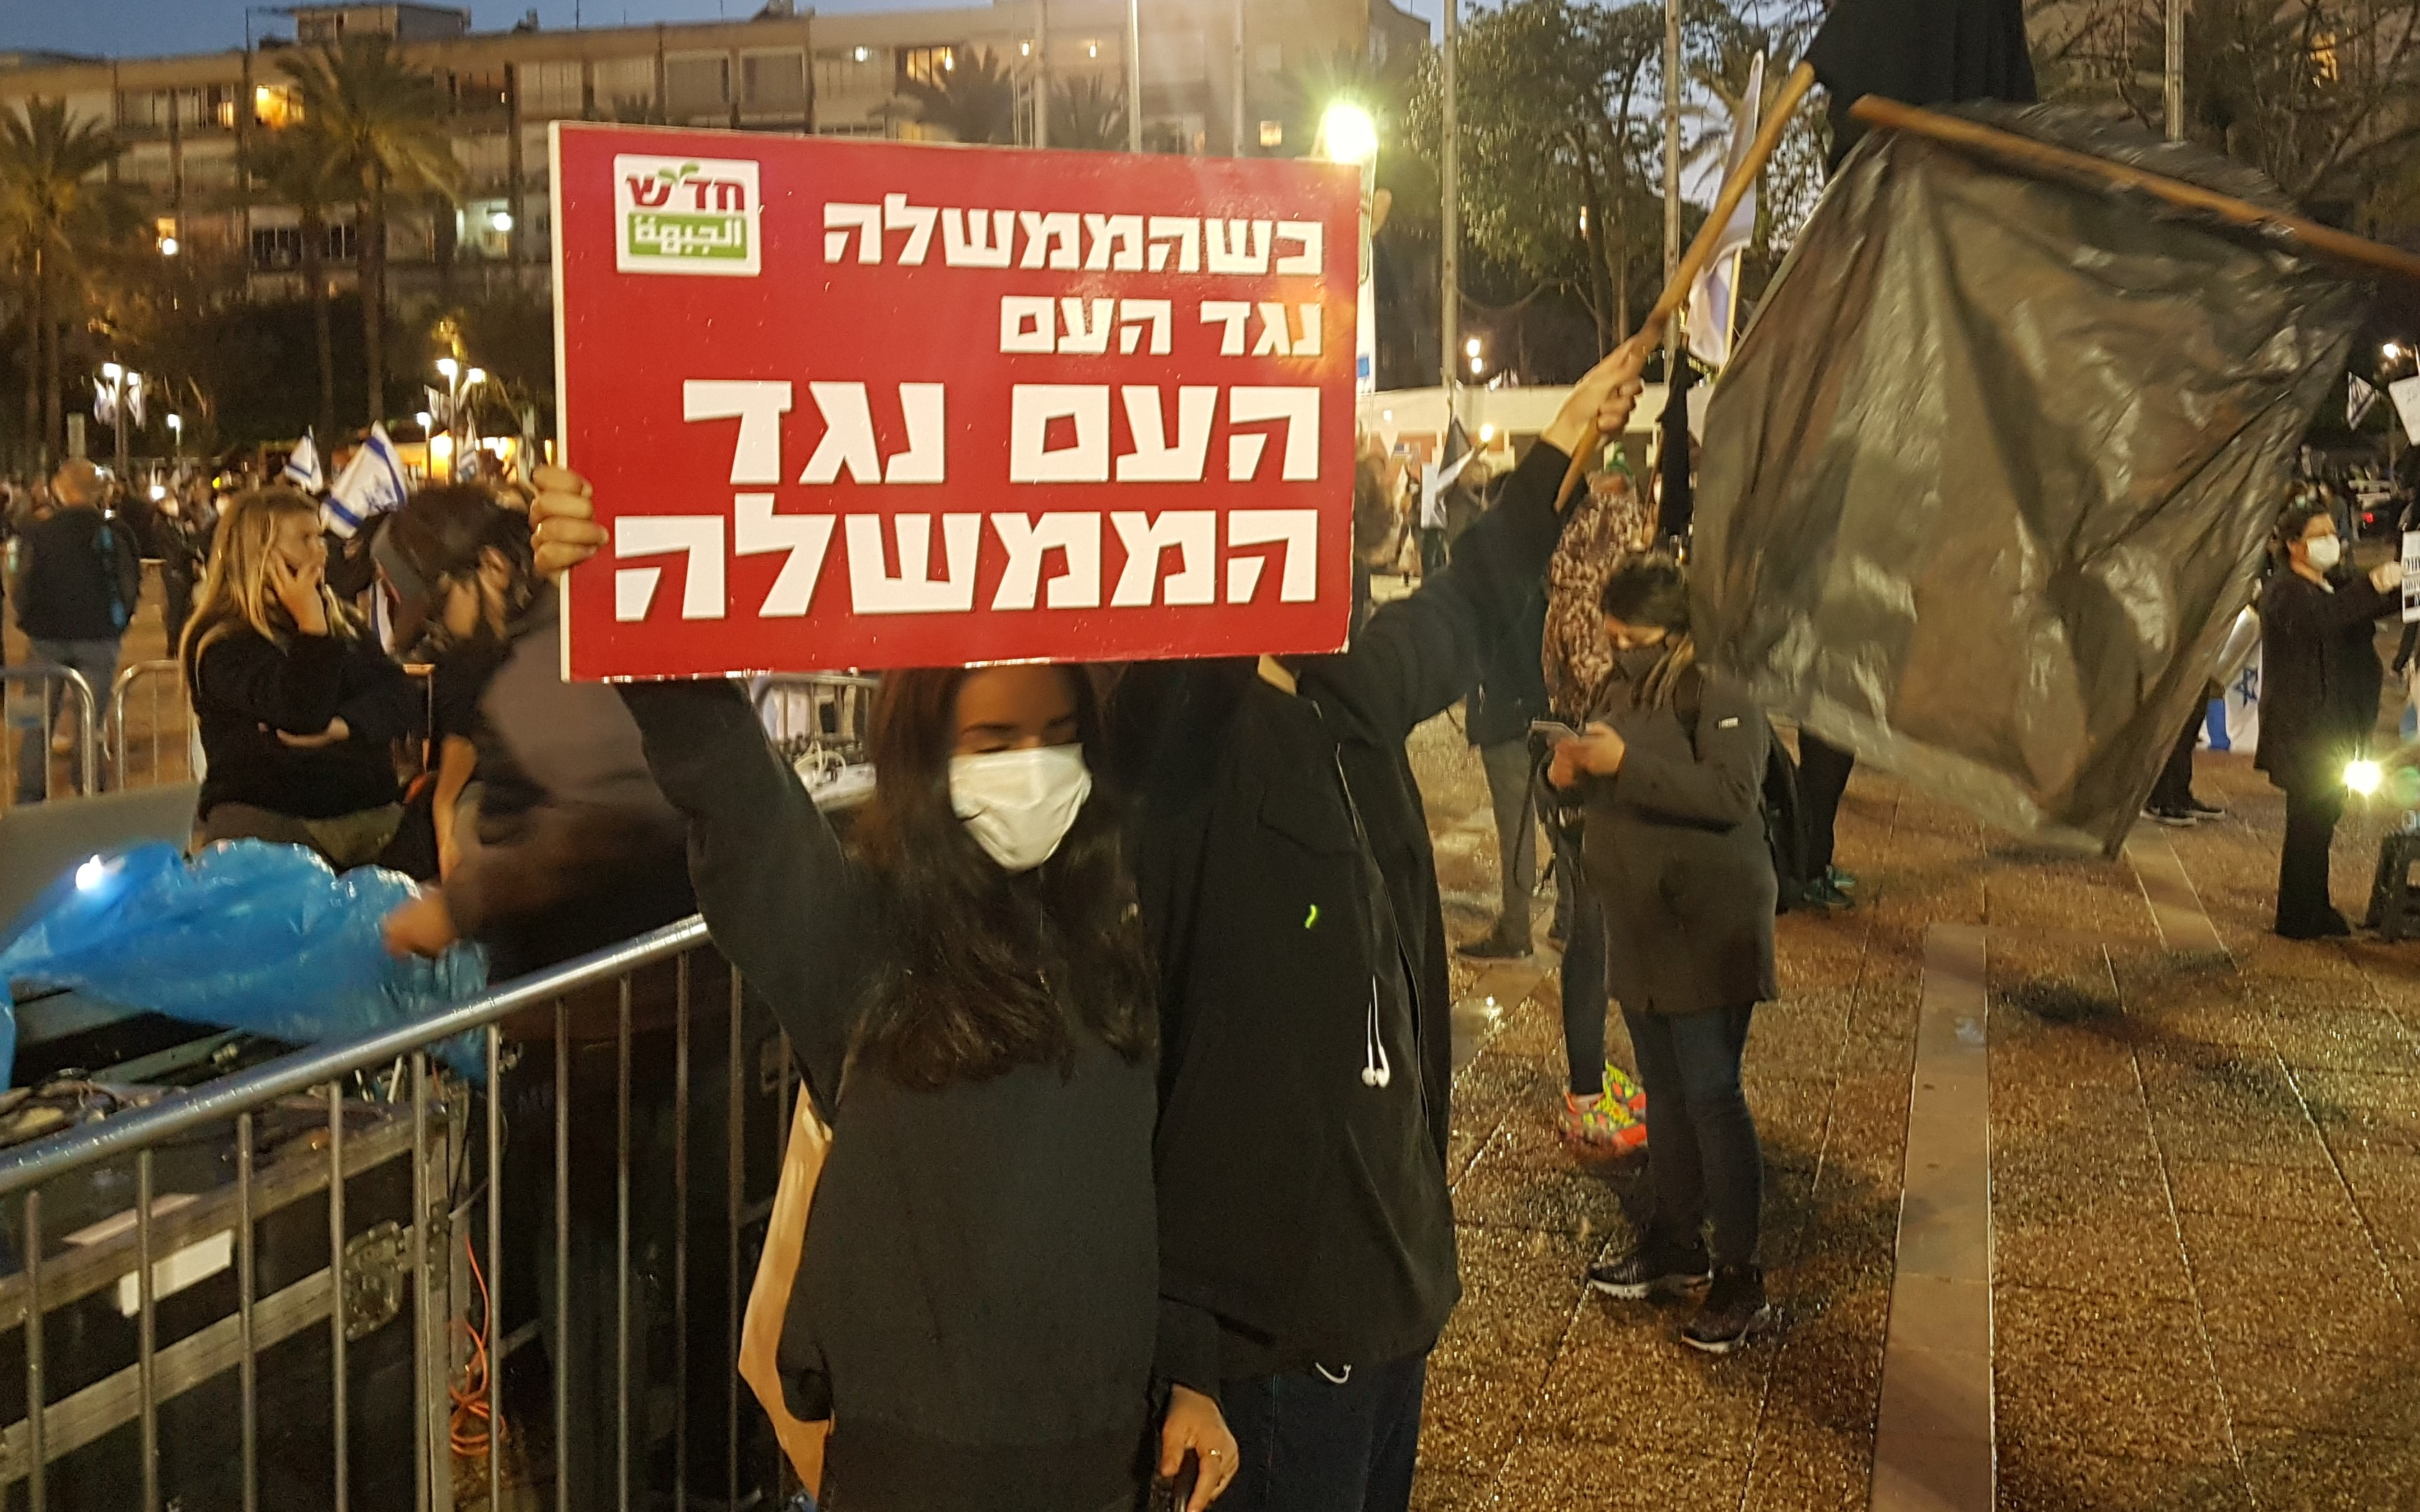 """Two of the Hadash activists who participated in the demonstration organized by the Black Flag Movement on Saturday evening, April 25, Tel Aviv's Rabin Square; the Hadash placard reads """"When the government is against the people, the people are against the government."""""""